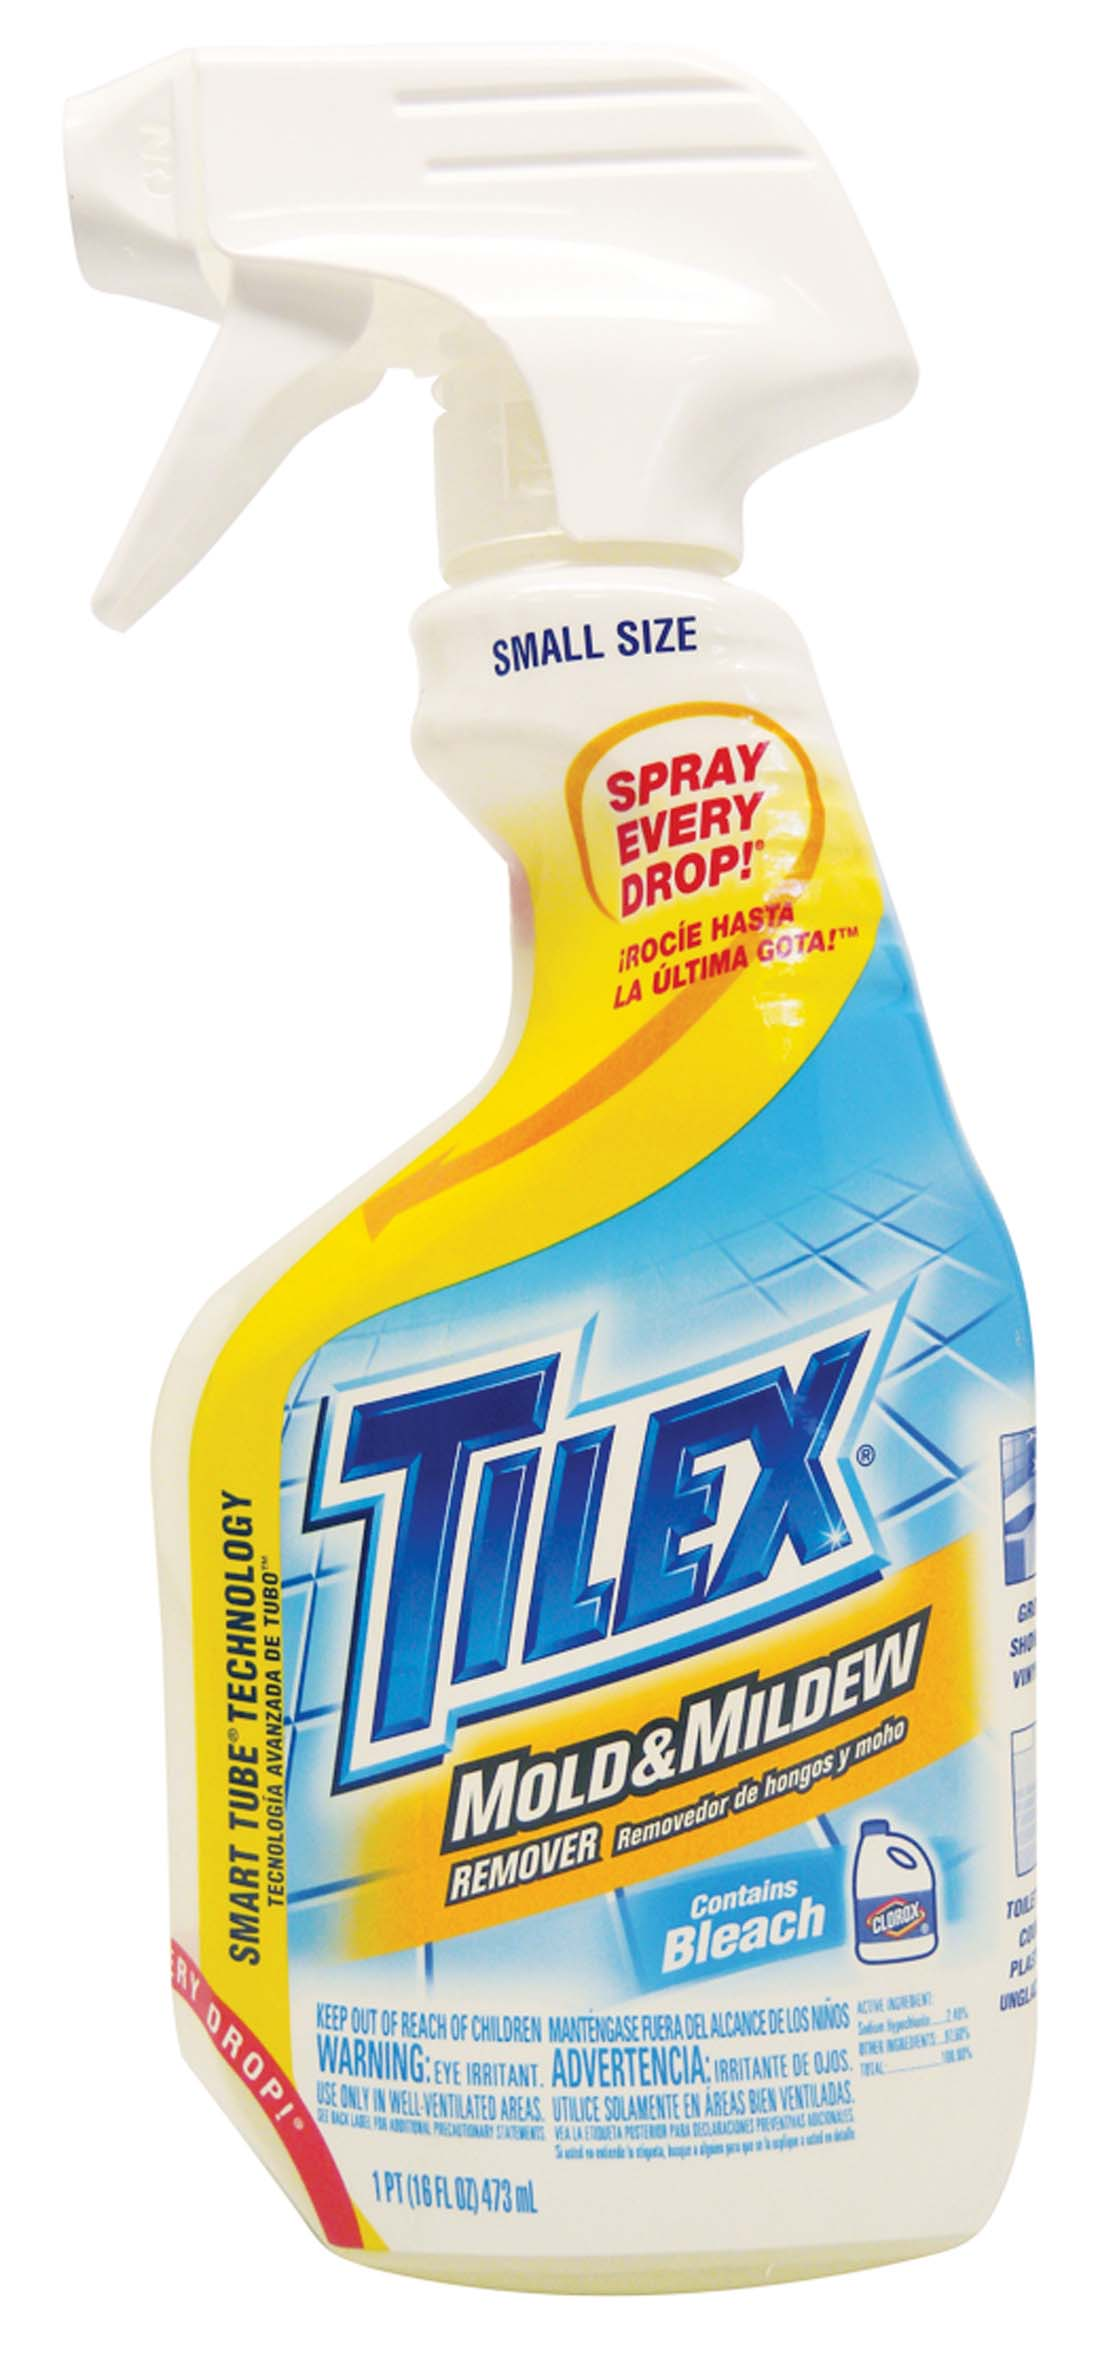 View TILEX MOLD AND MILDEW REMOVER 16 OZ SPRAY WITH BLEACH